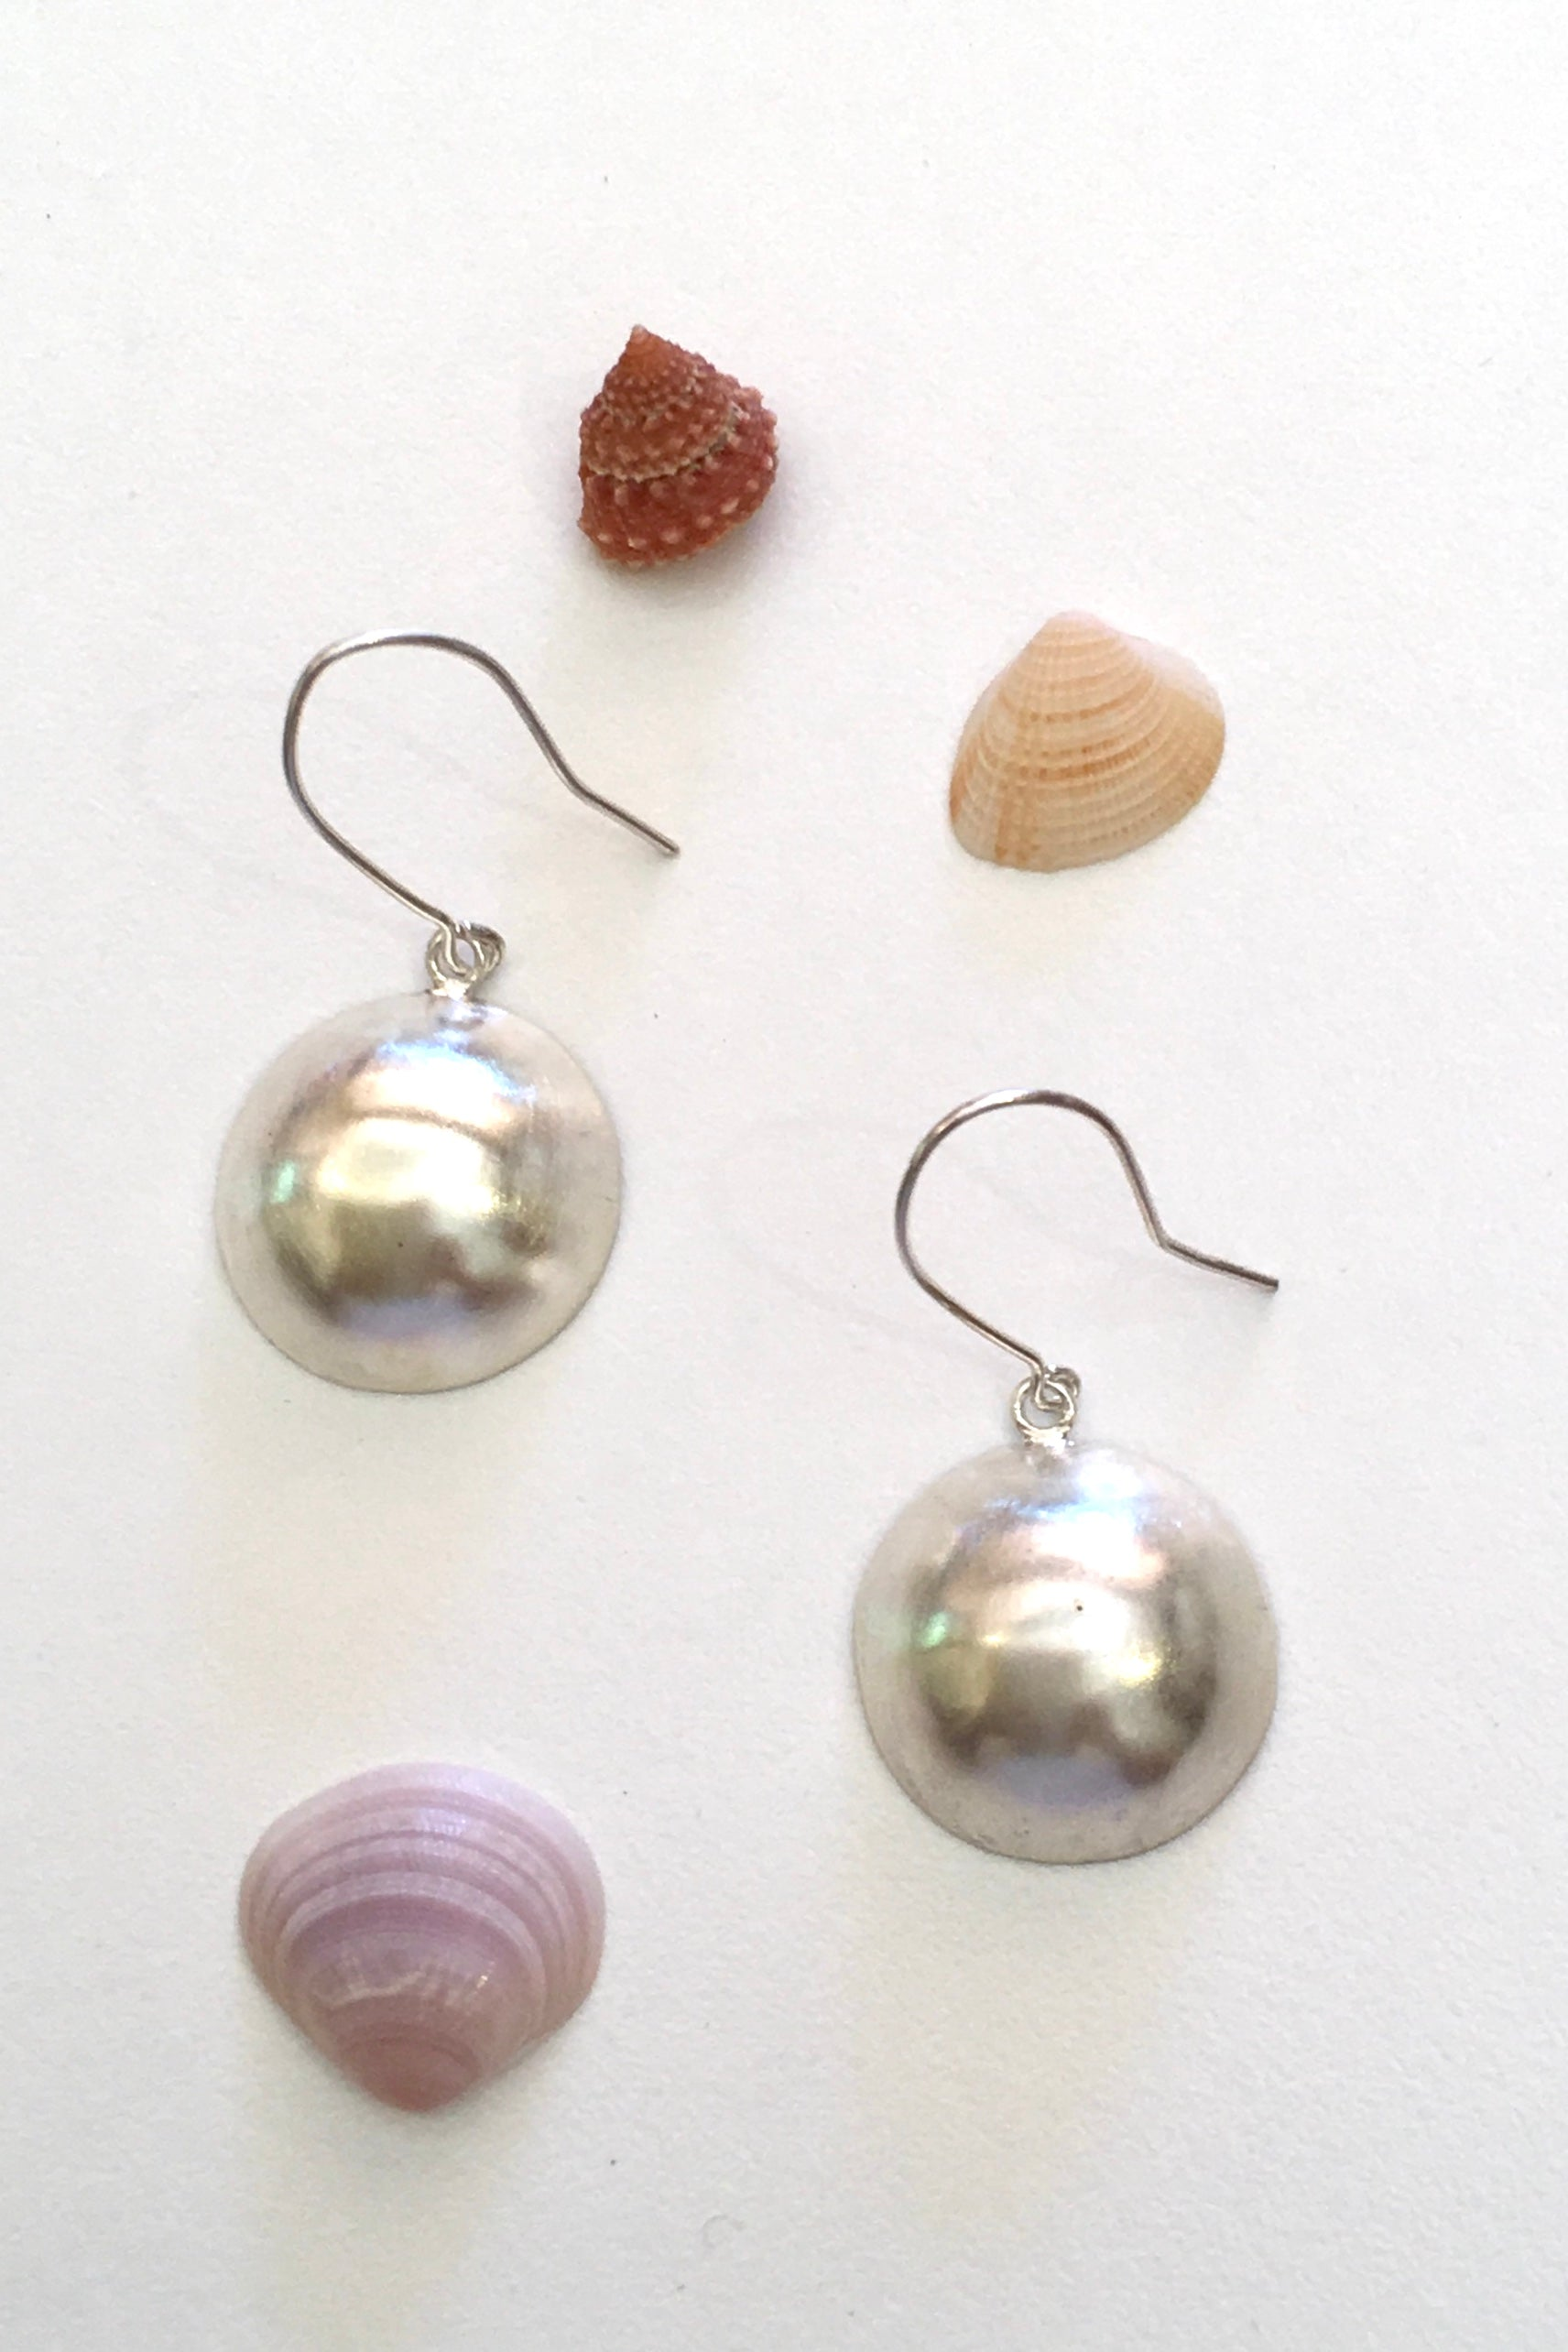 Silver Single Dome Earrings, 925 Silver Brushed Satin Finish Earrings